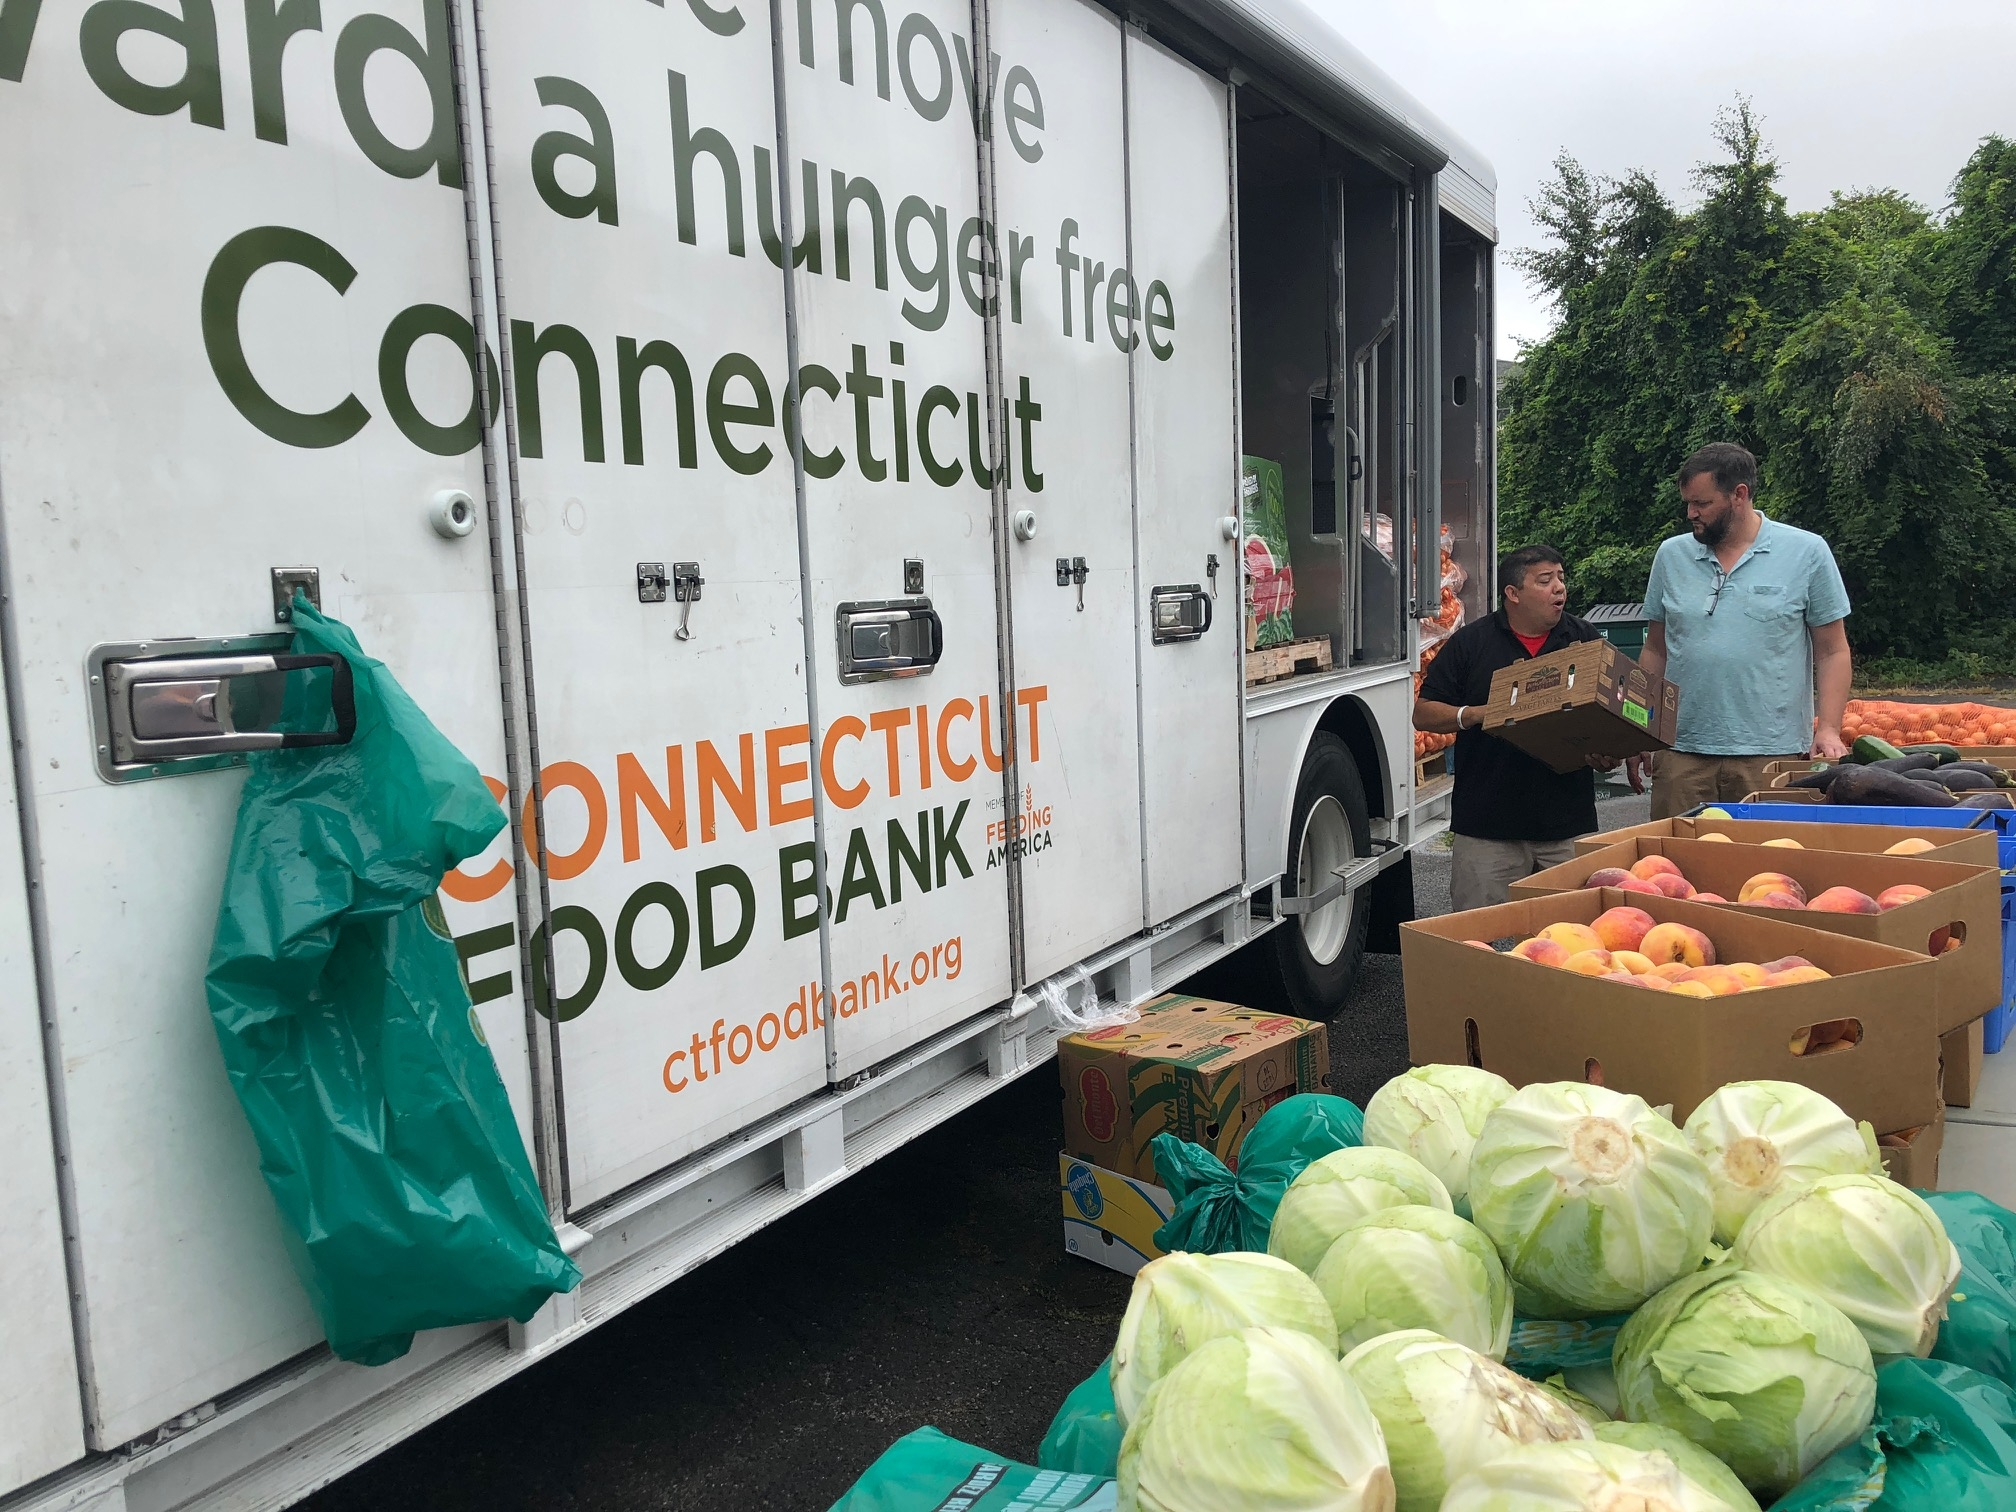 Food bank in Bridgeport